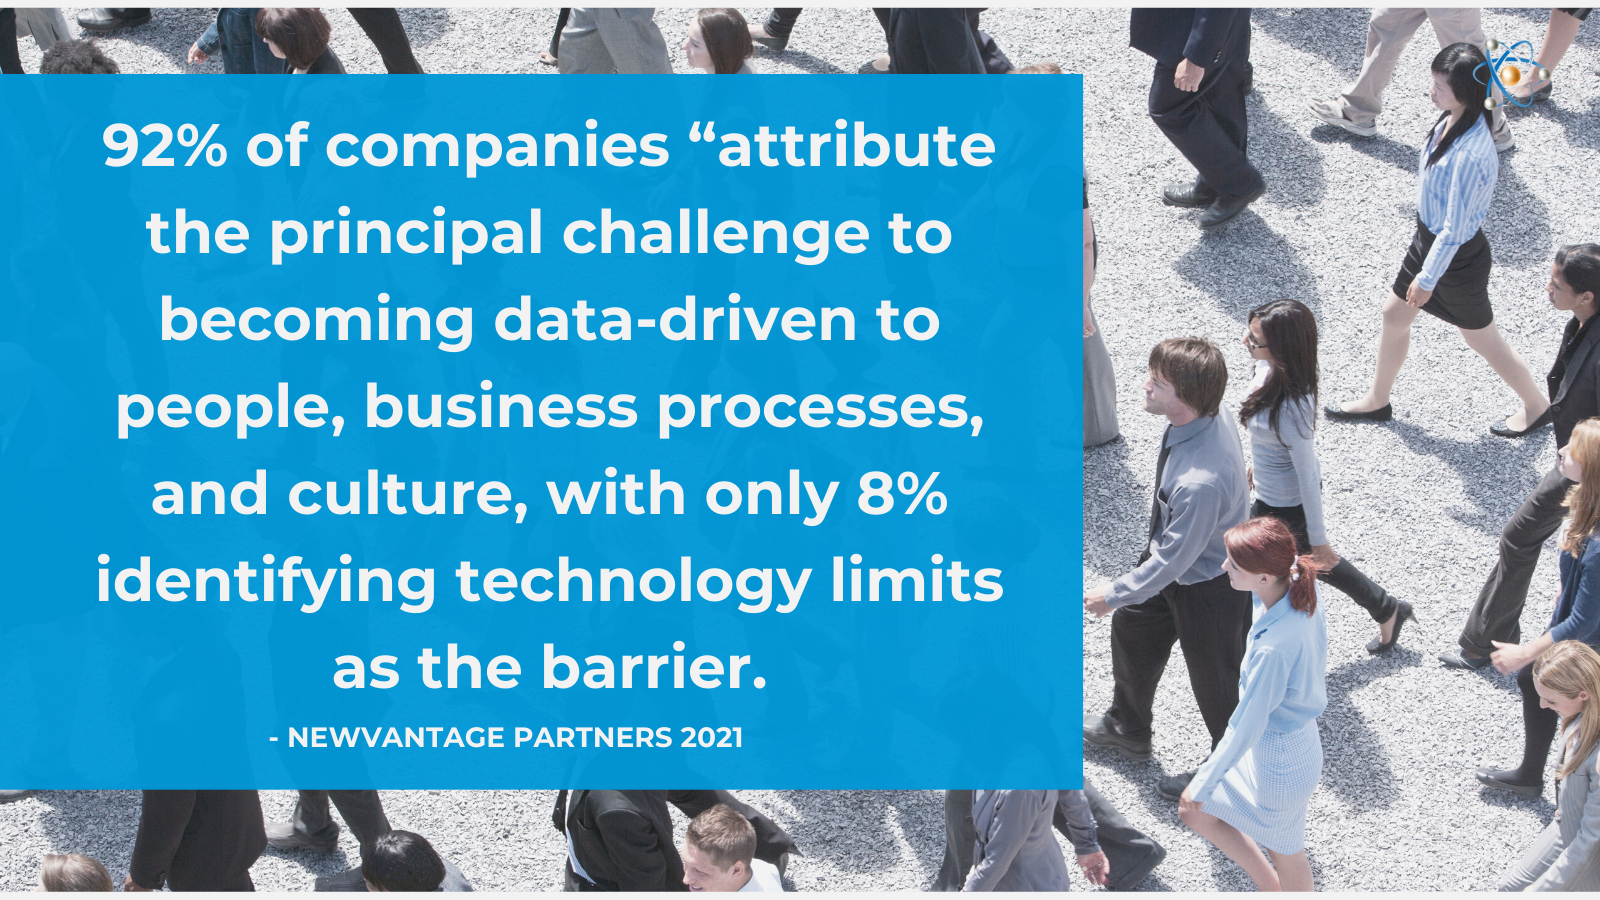 92% companies attribute the principal challenge to becoming data-driven peole business process culture technology limits auvis atomic revenue